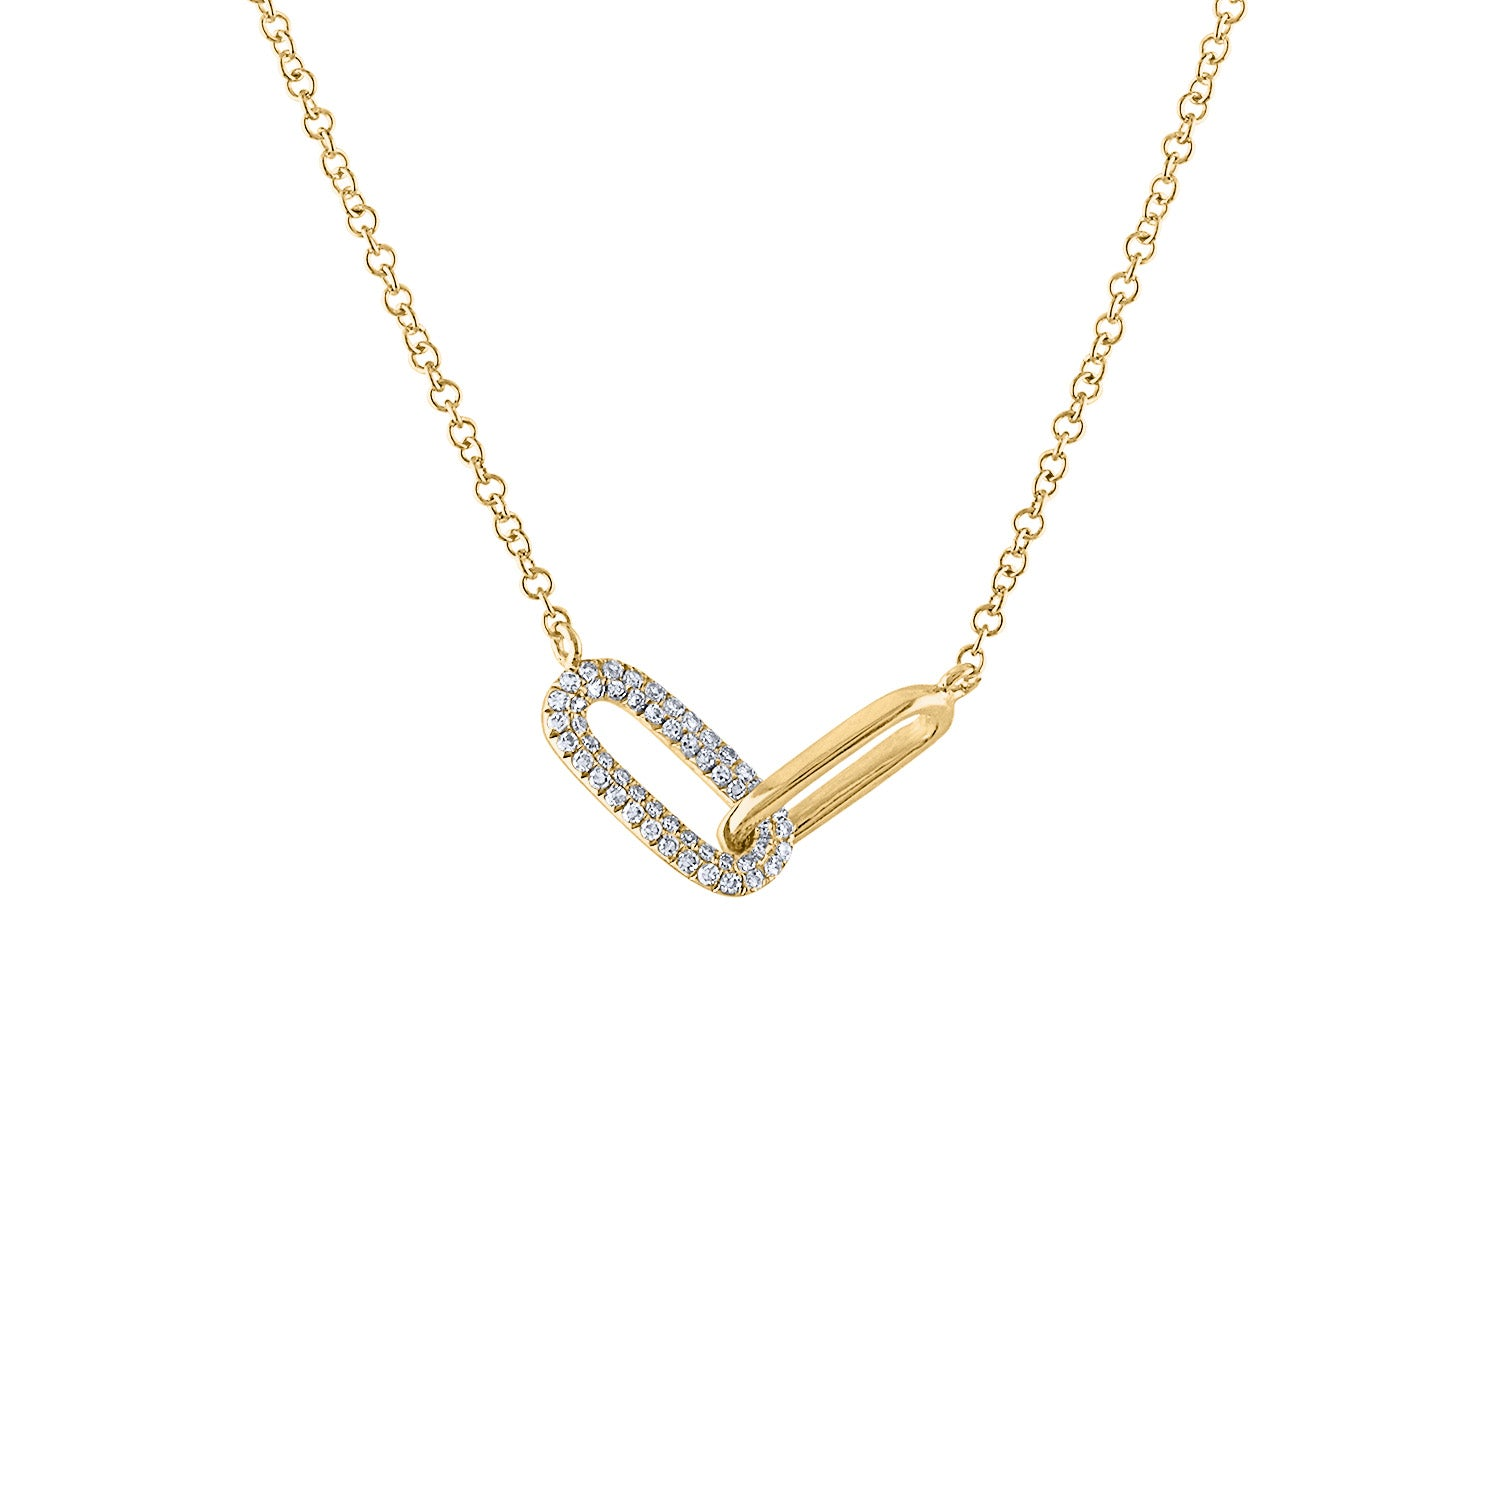 14KT GOLD DIAMOND INTERLOCKING RECTANGLE LINK NECKLACE